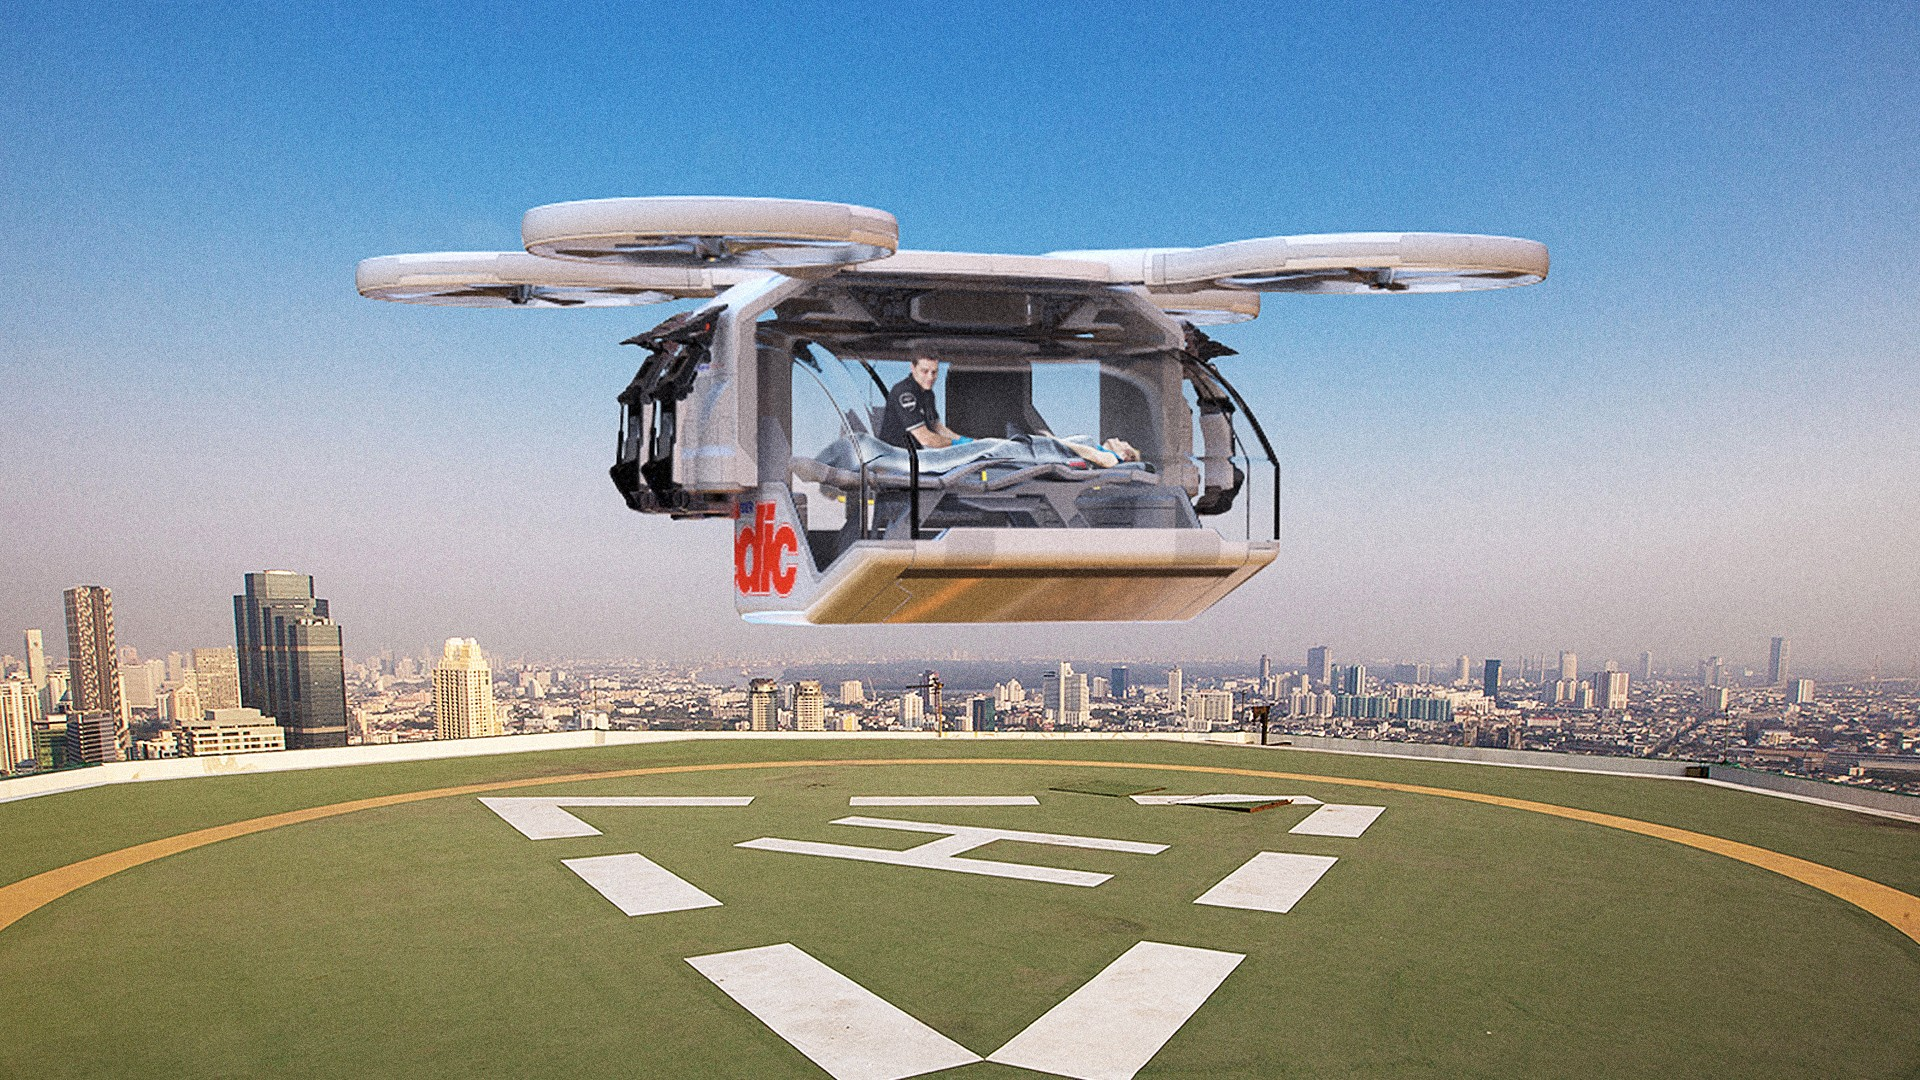 3041696-poster-p-1-this-drone-ambulance-is-totally-wild-and-totally-inevitable